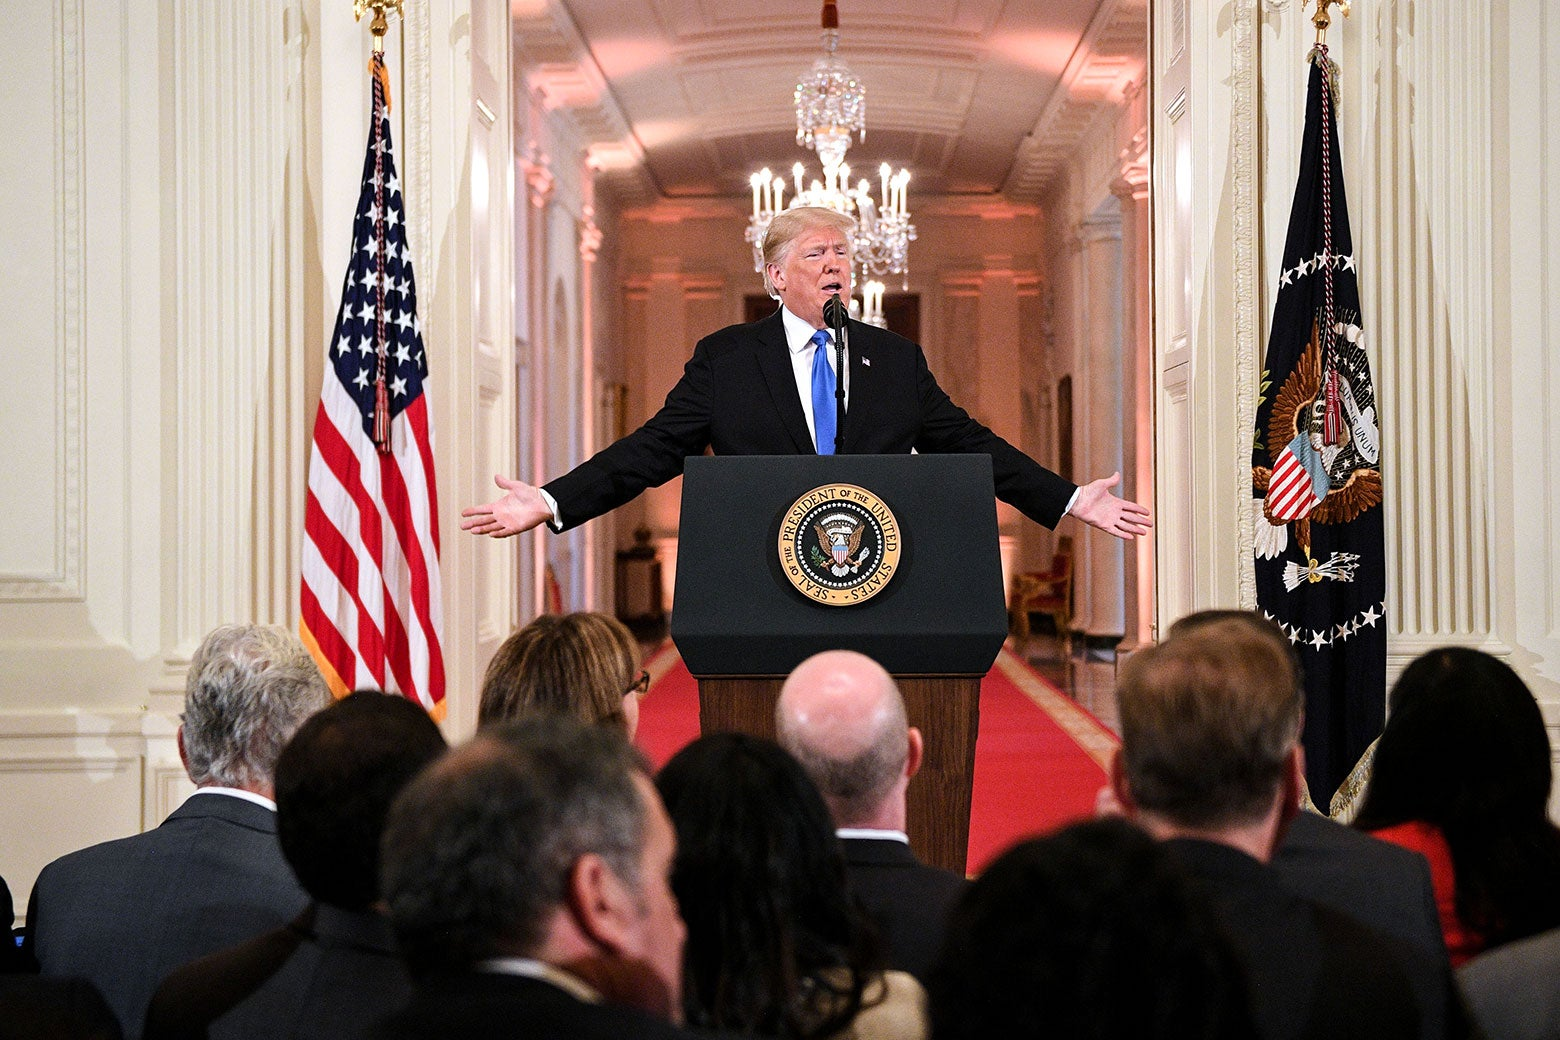 President Donald Trump speaks during a press conference at the White House in Washington on Wednesday.